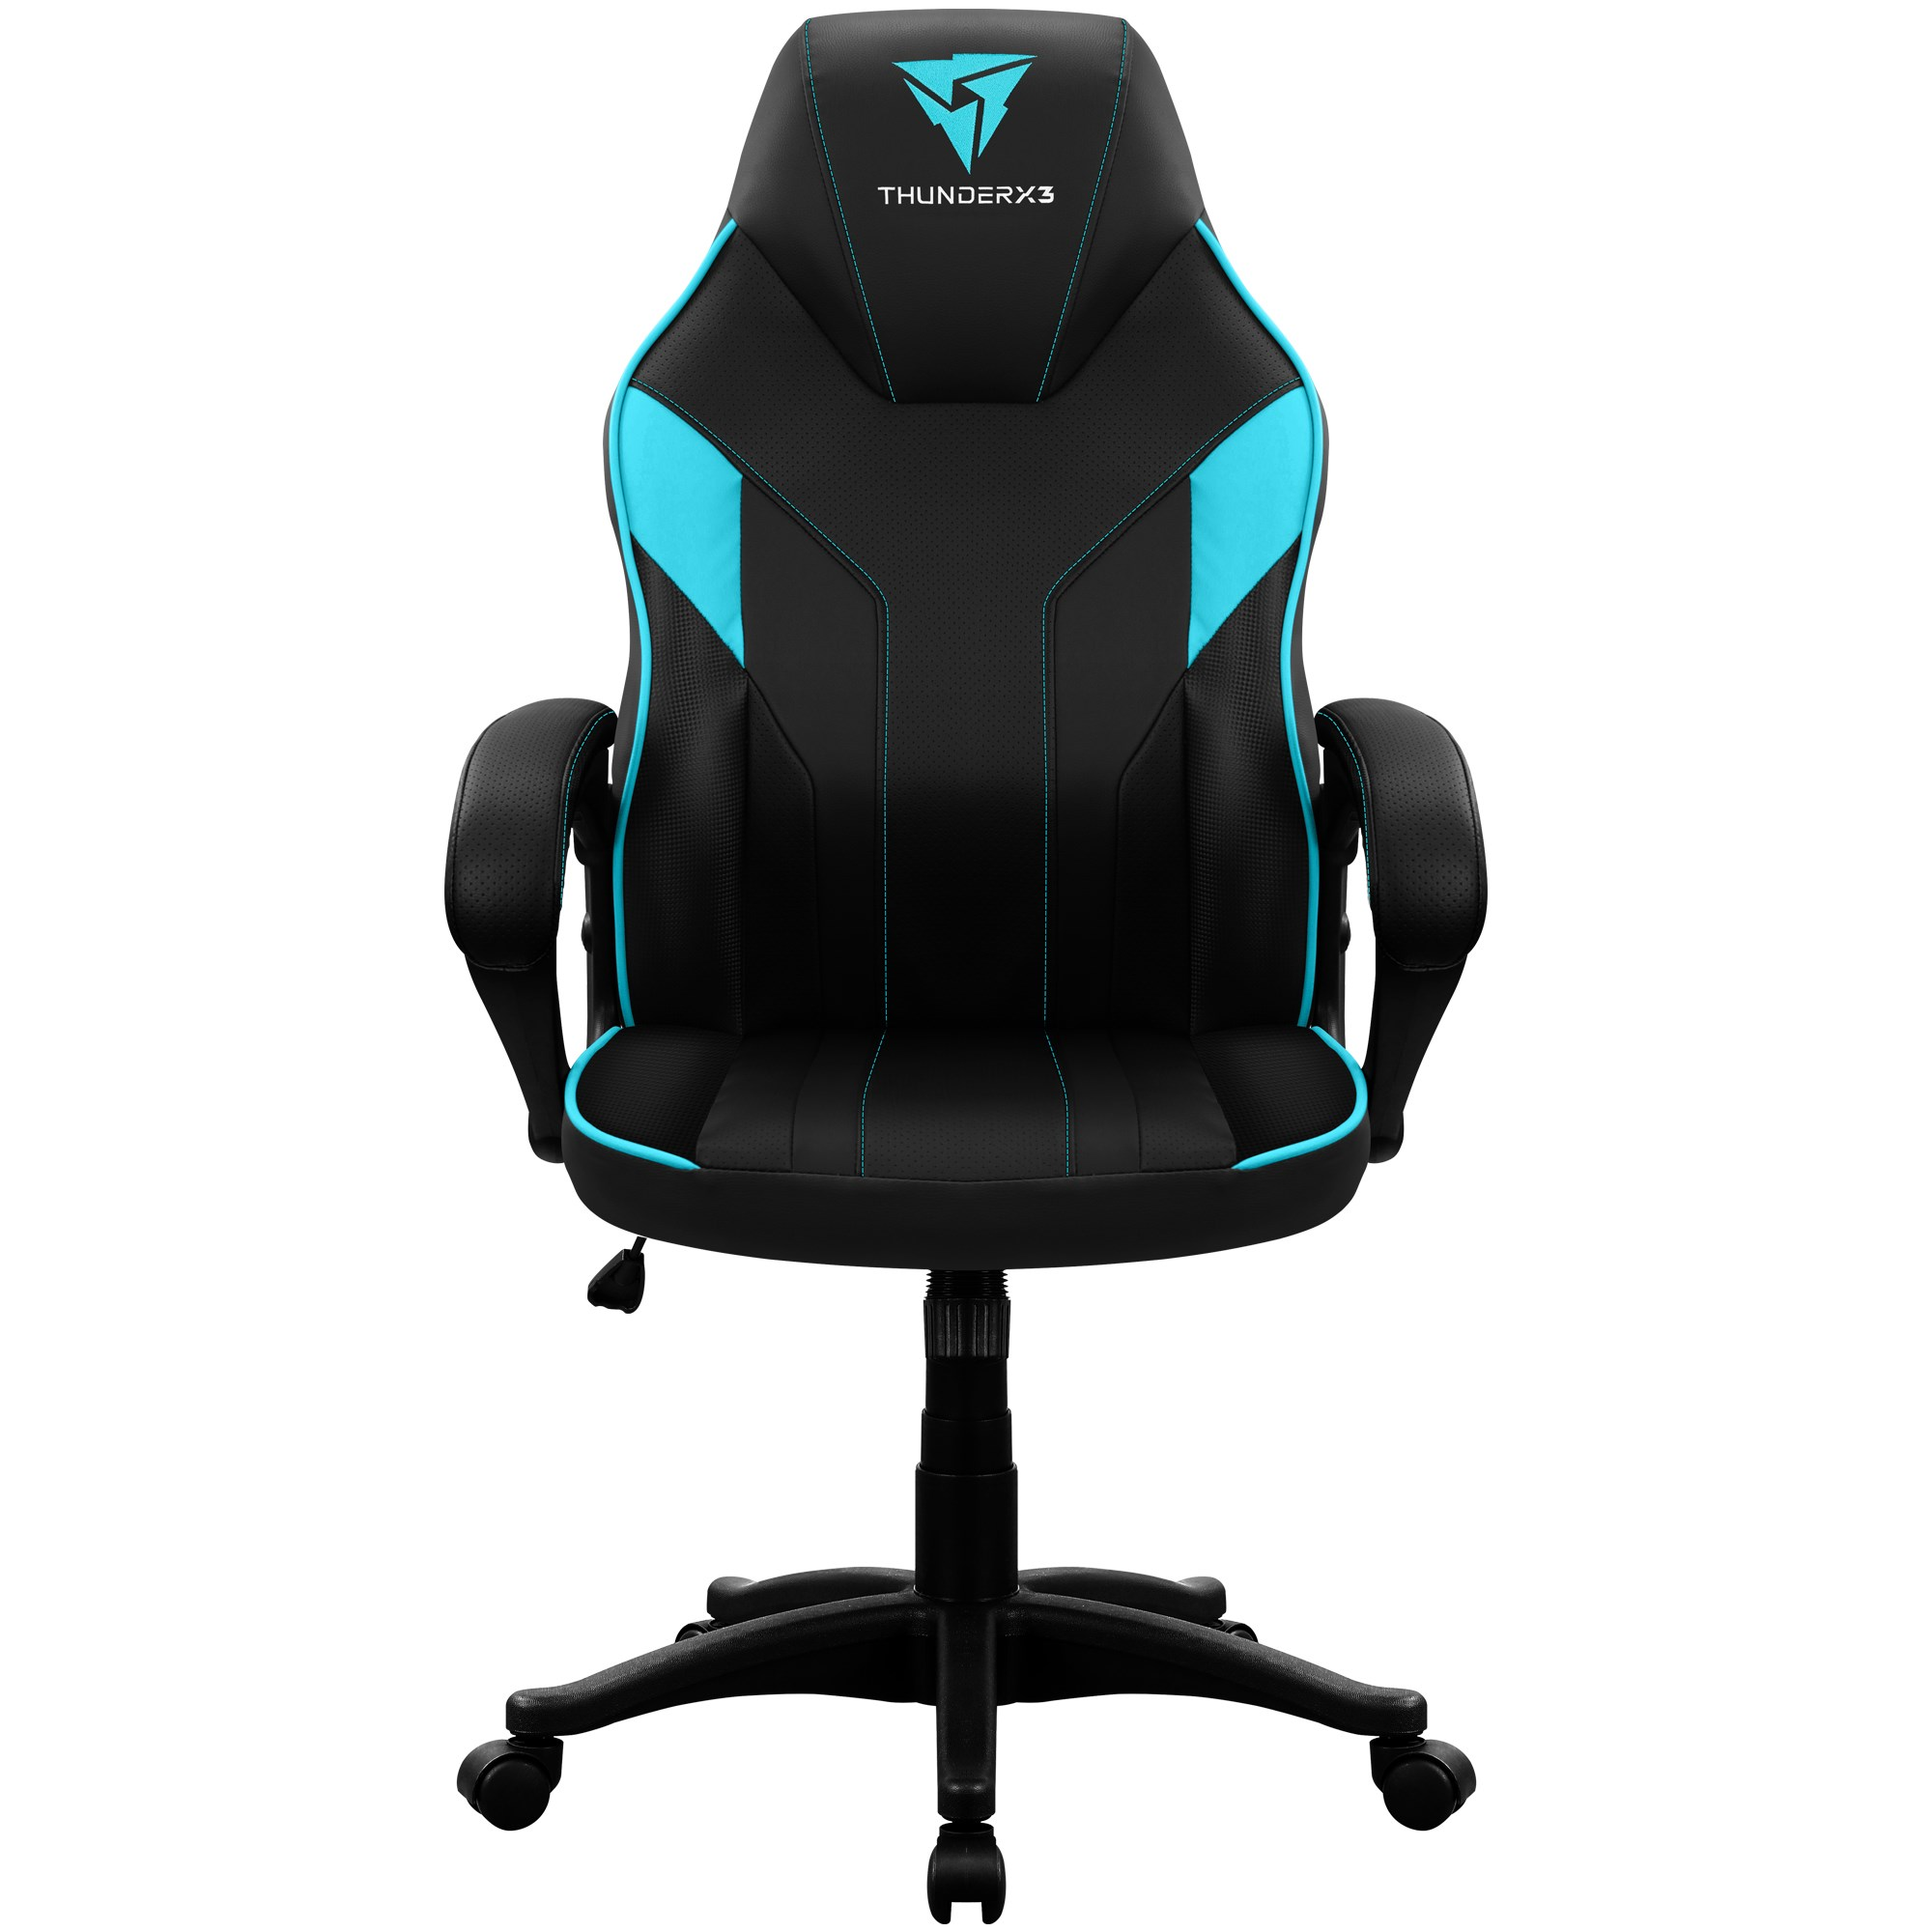 ThunderX3 EC1, Chair Gaming Ergonomic, Technology AIR, Armrest Padded, Adjustable Height, Cyan